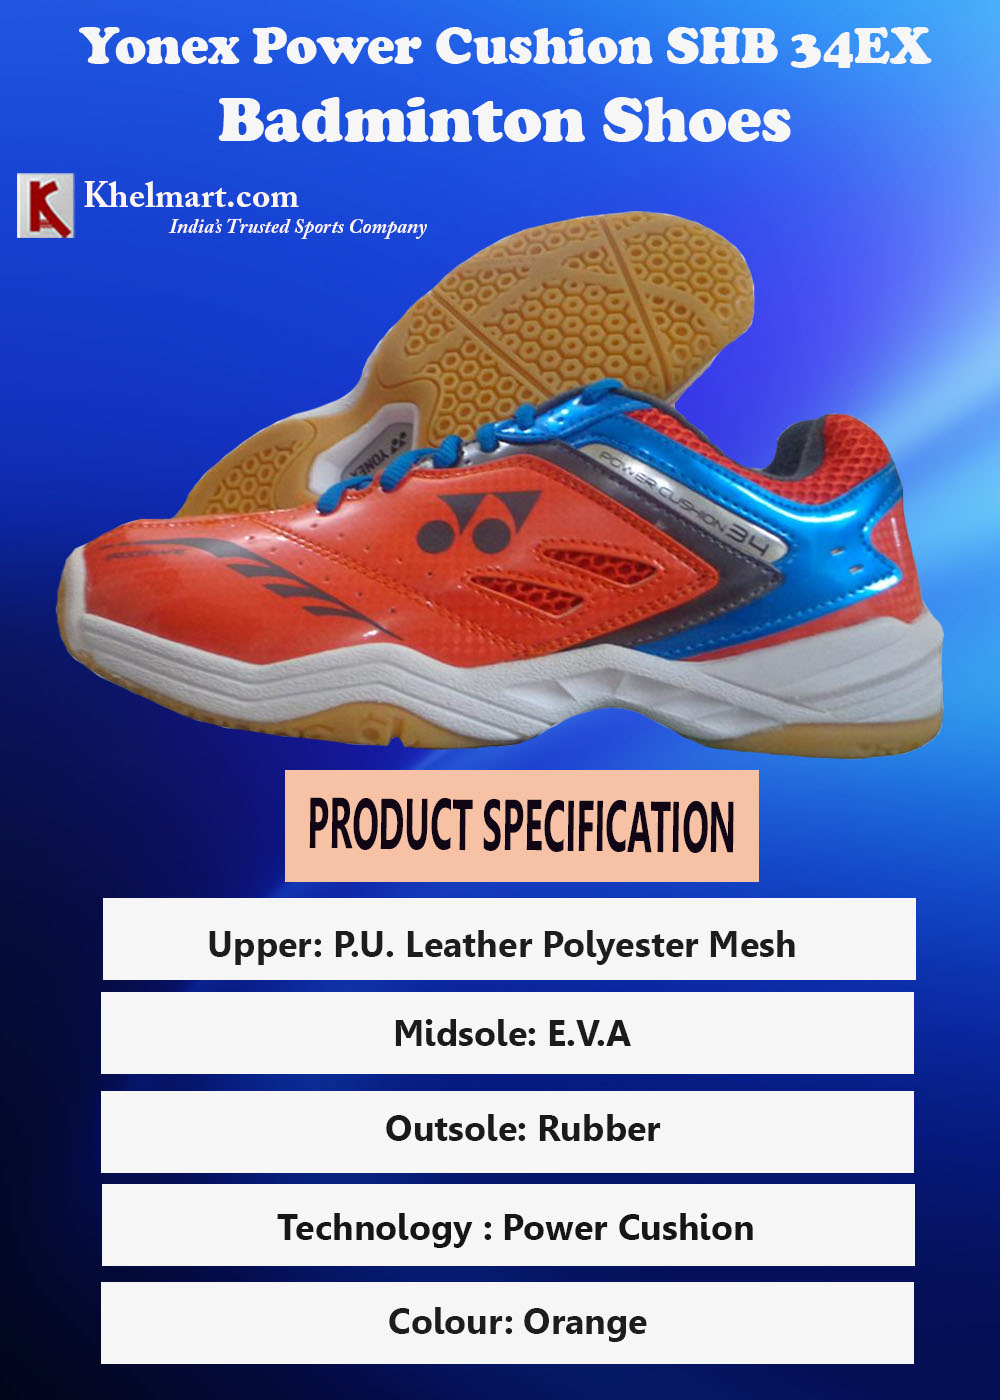 Yonex Power Cushion SHB 34EX Badminton Shoes